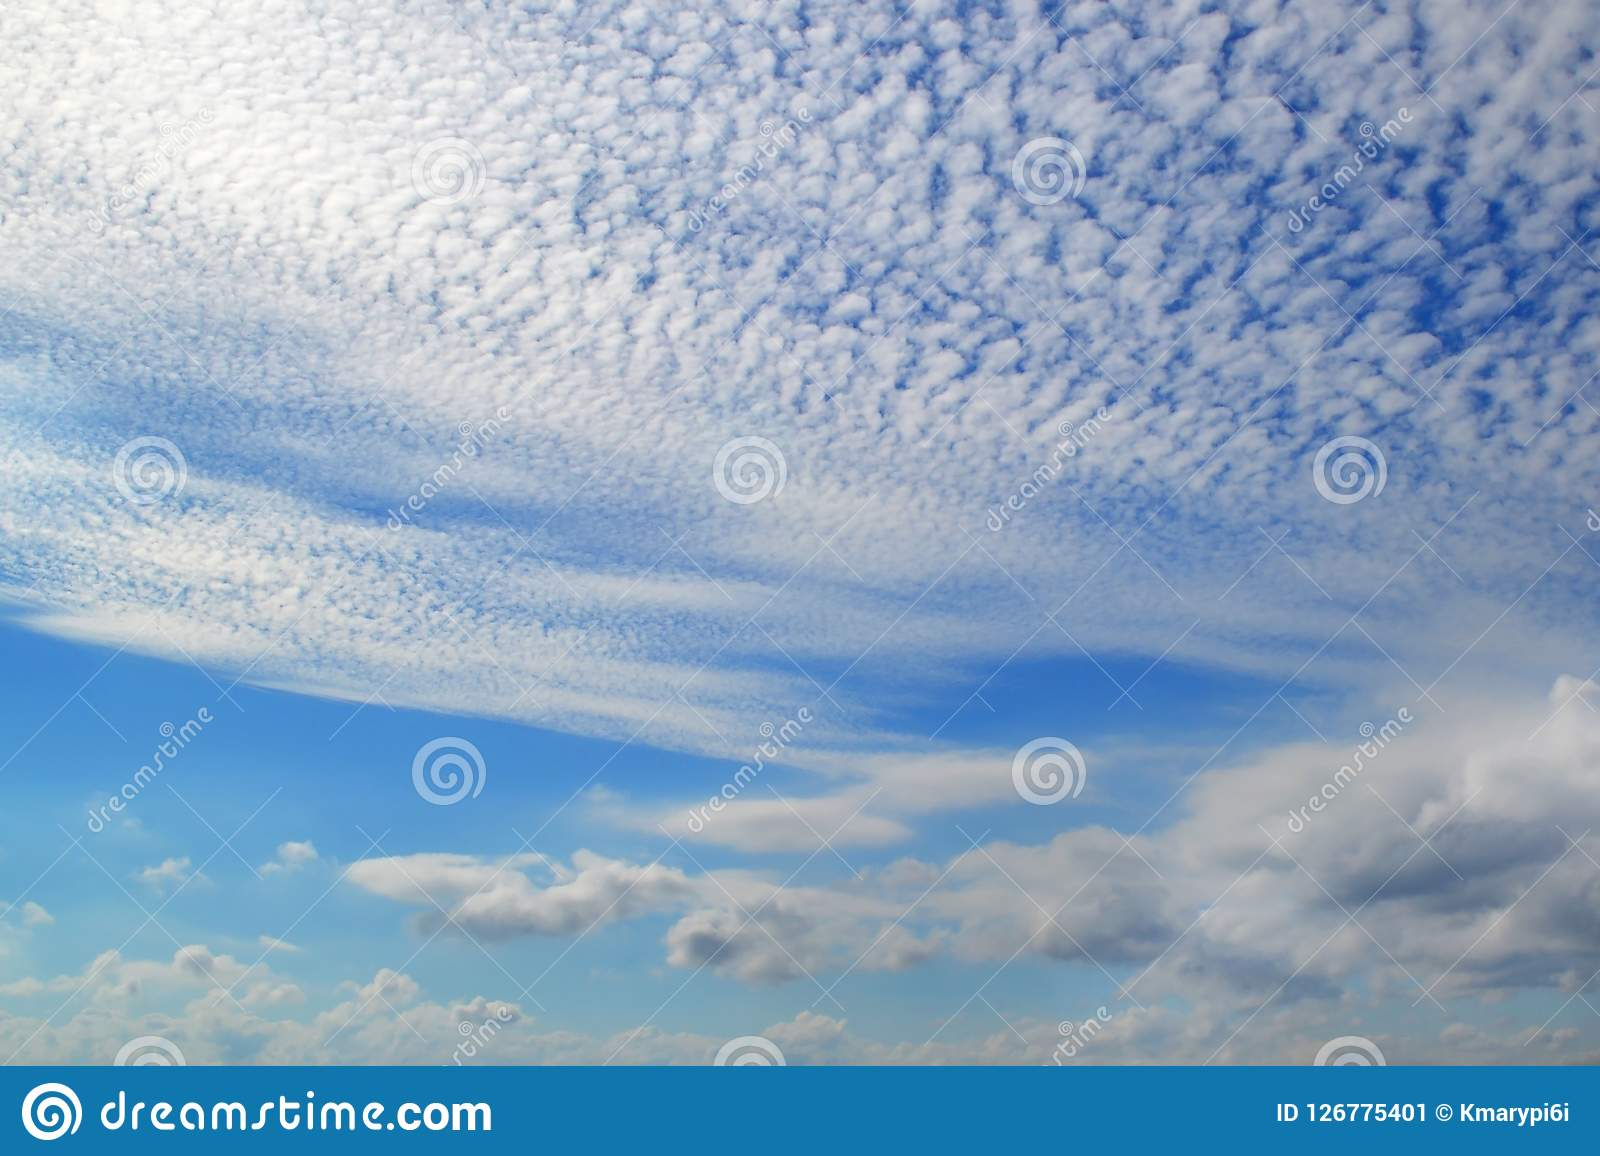 A lot of white clouds of different types: cumulus, cirrus, layered high in blue sky